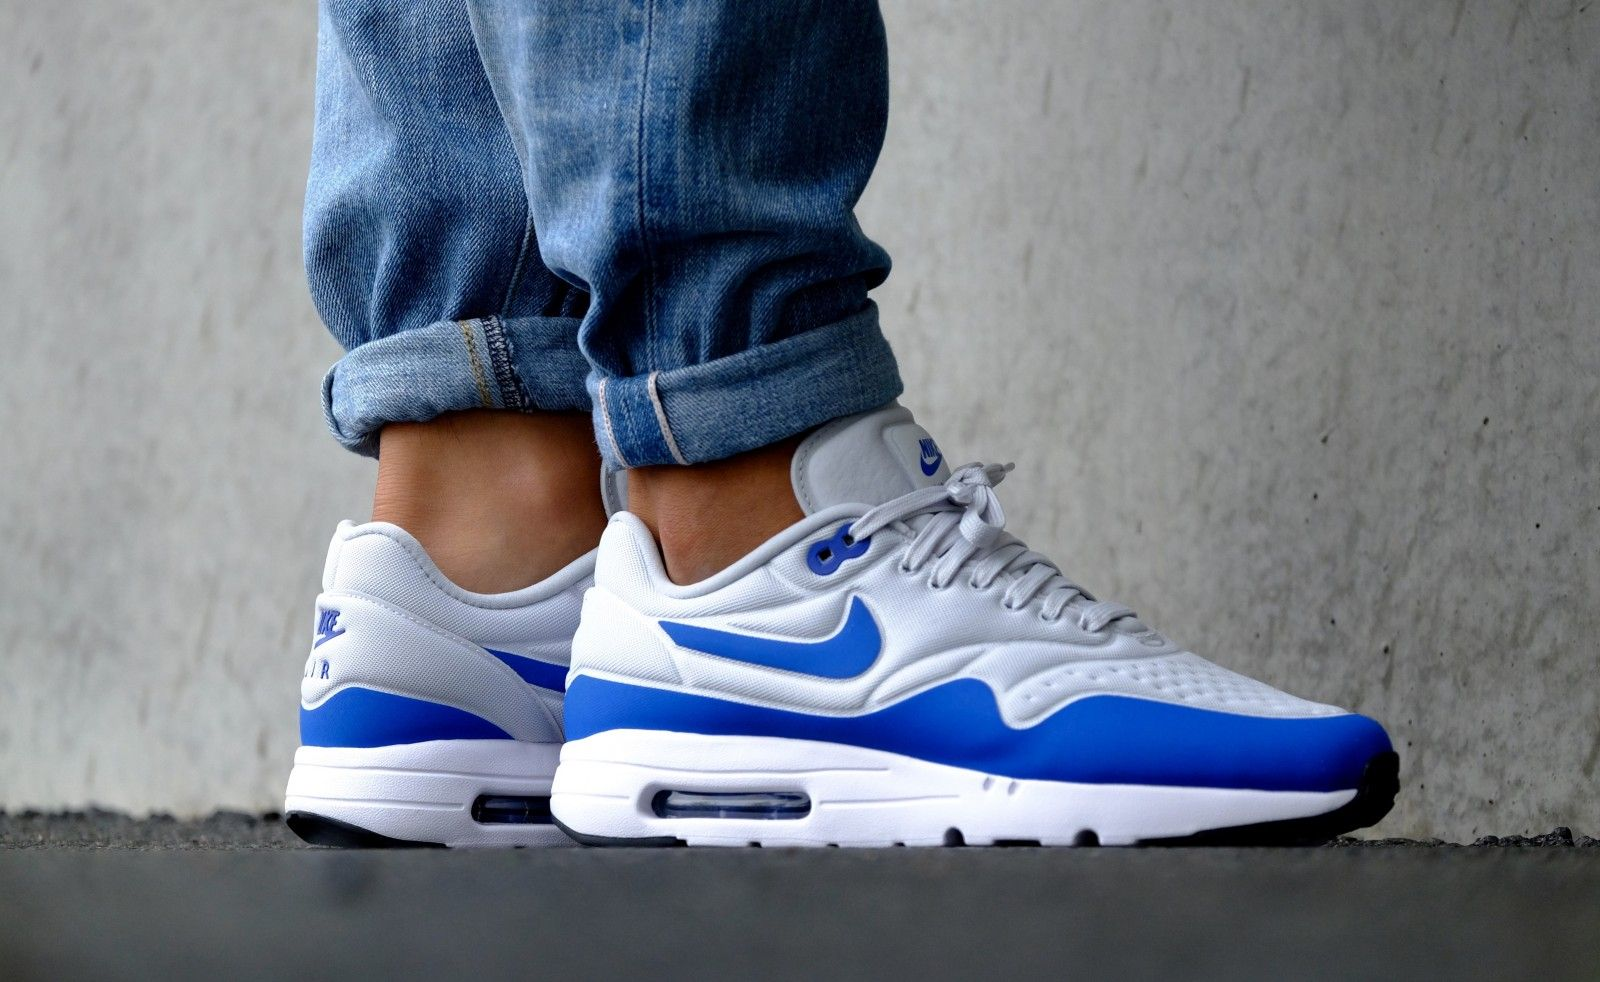 Nike Air Max 1 Ultra Special Edition Pure Platinum/ Game Royal - 845038-004